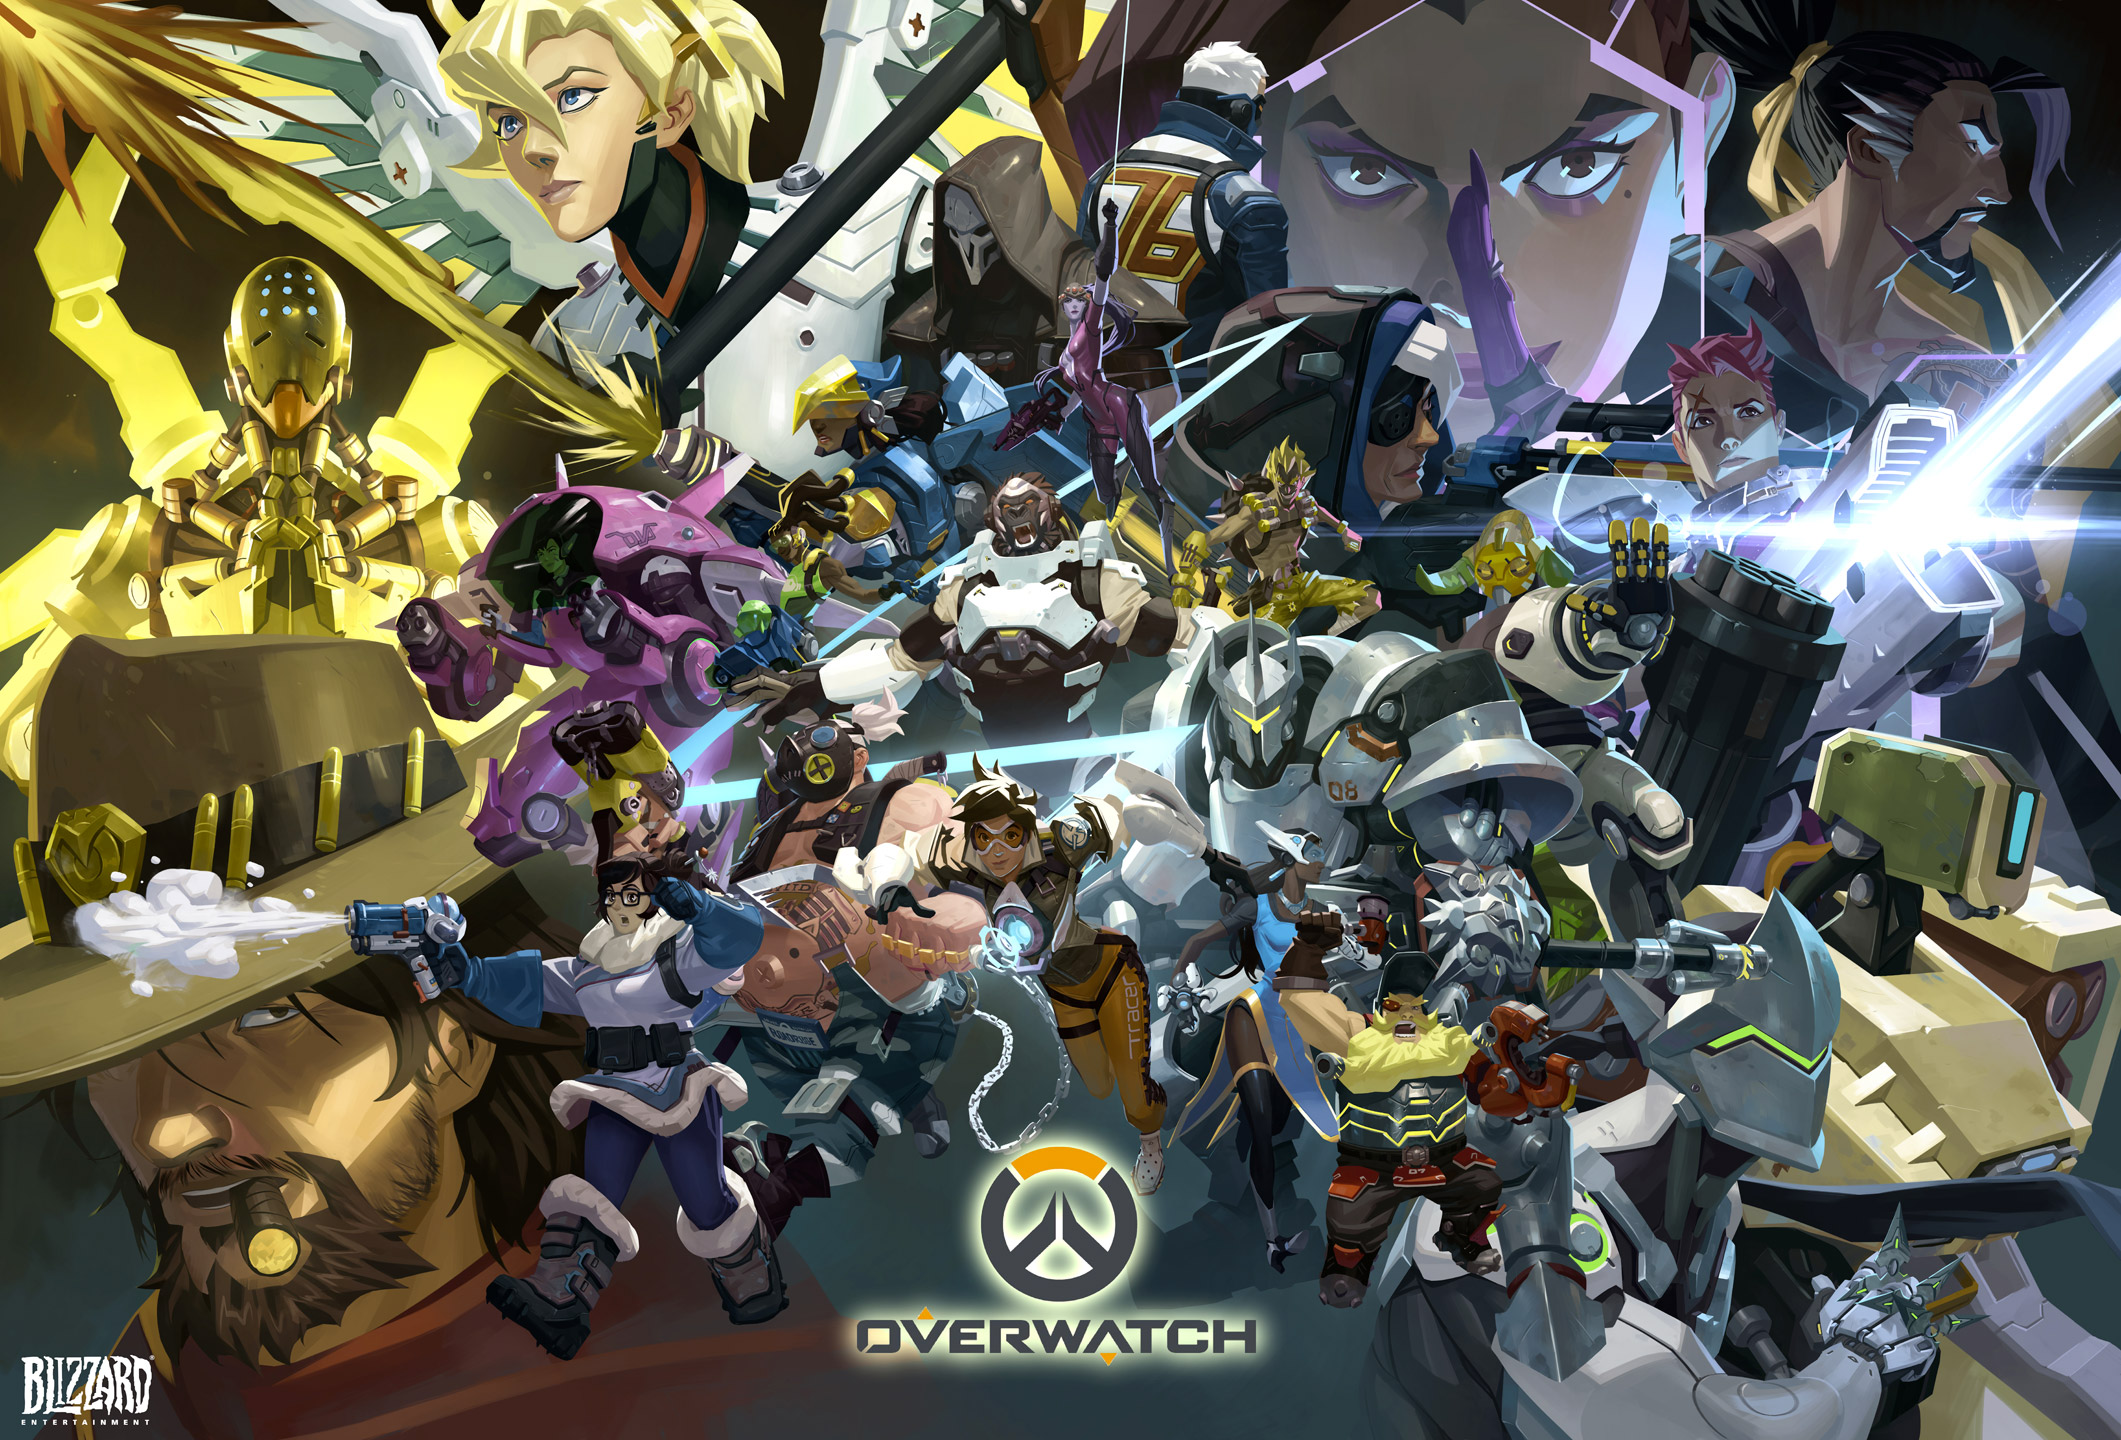 Hd Wallpaper Overwatch All Characters With Doomfist